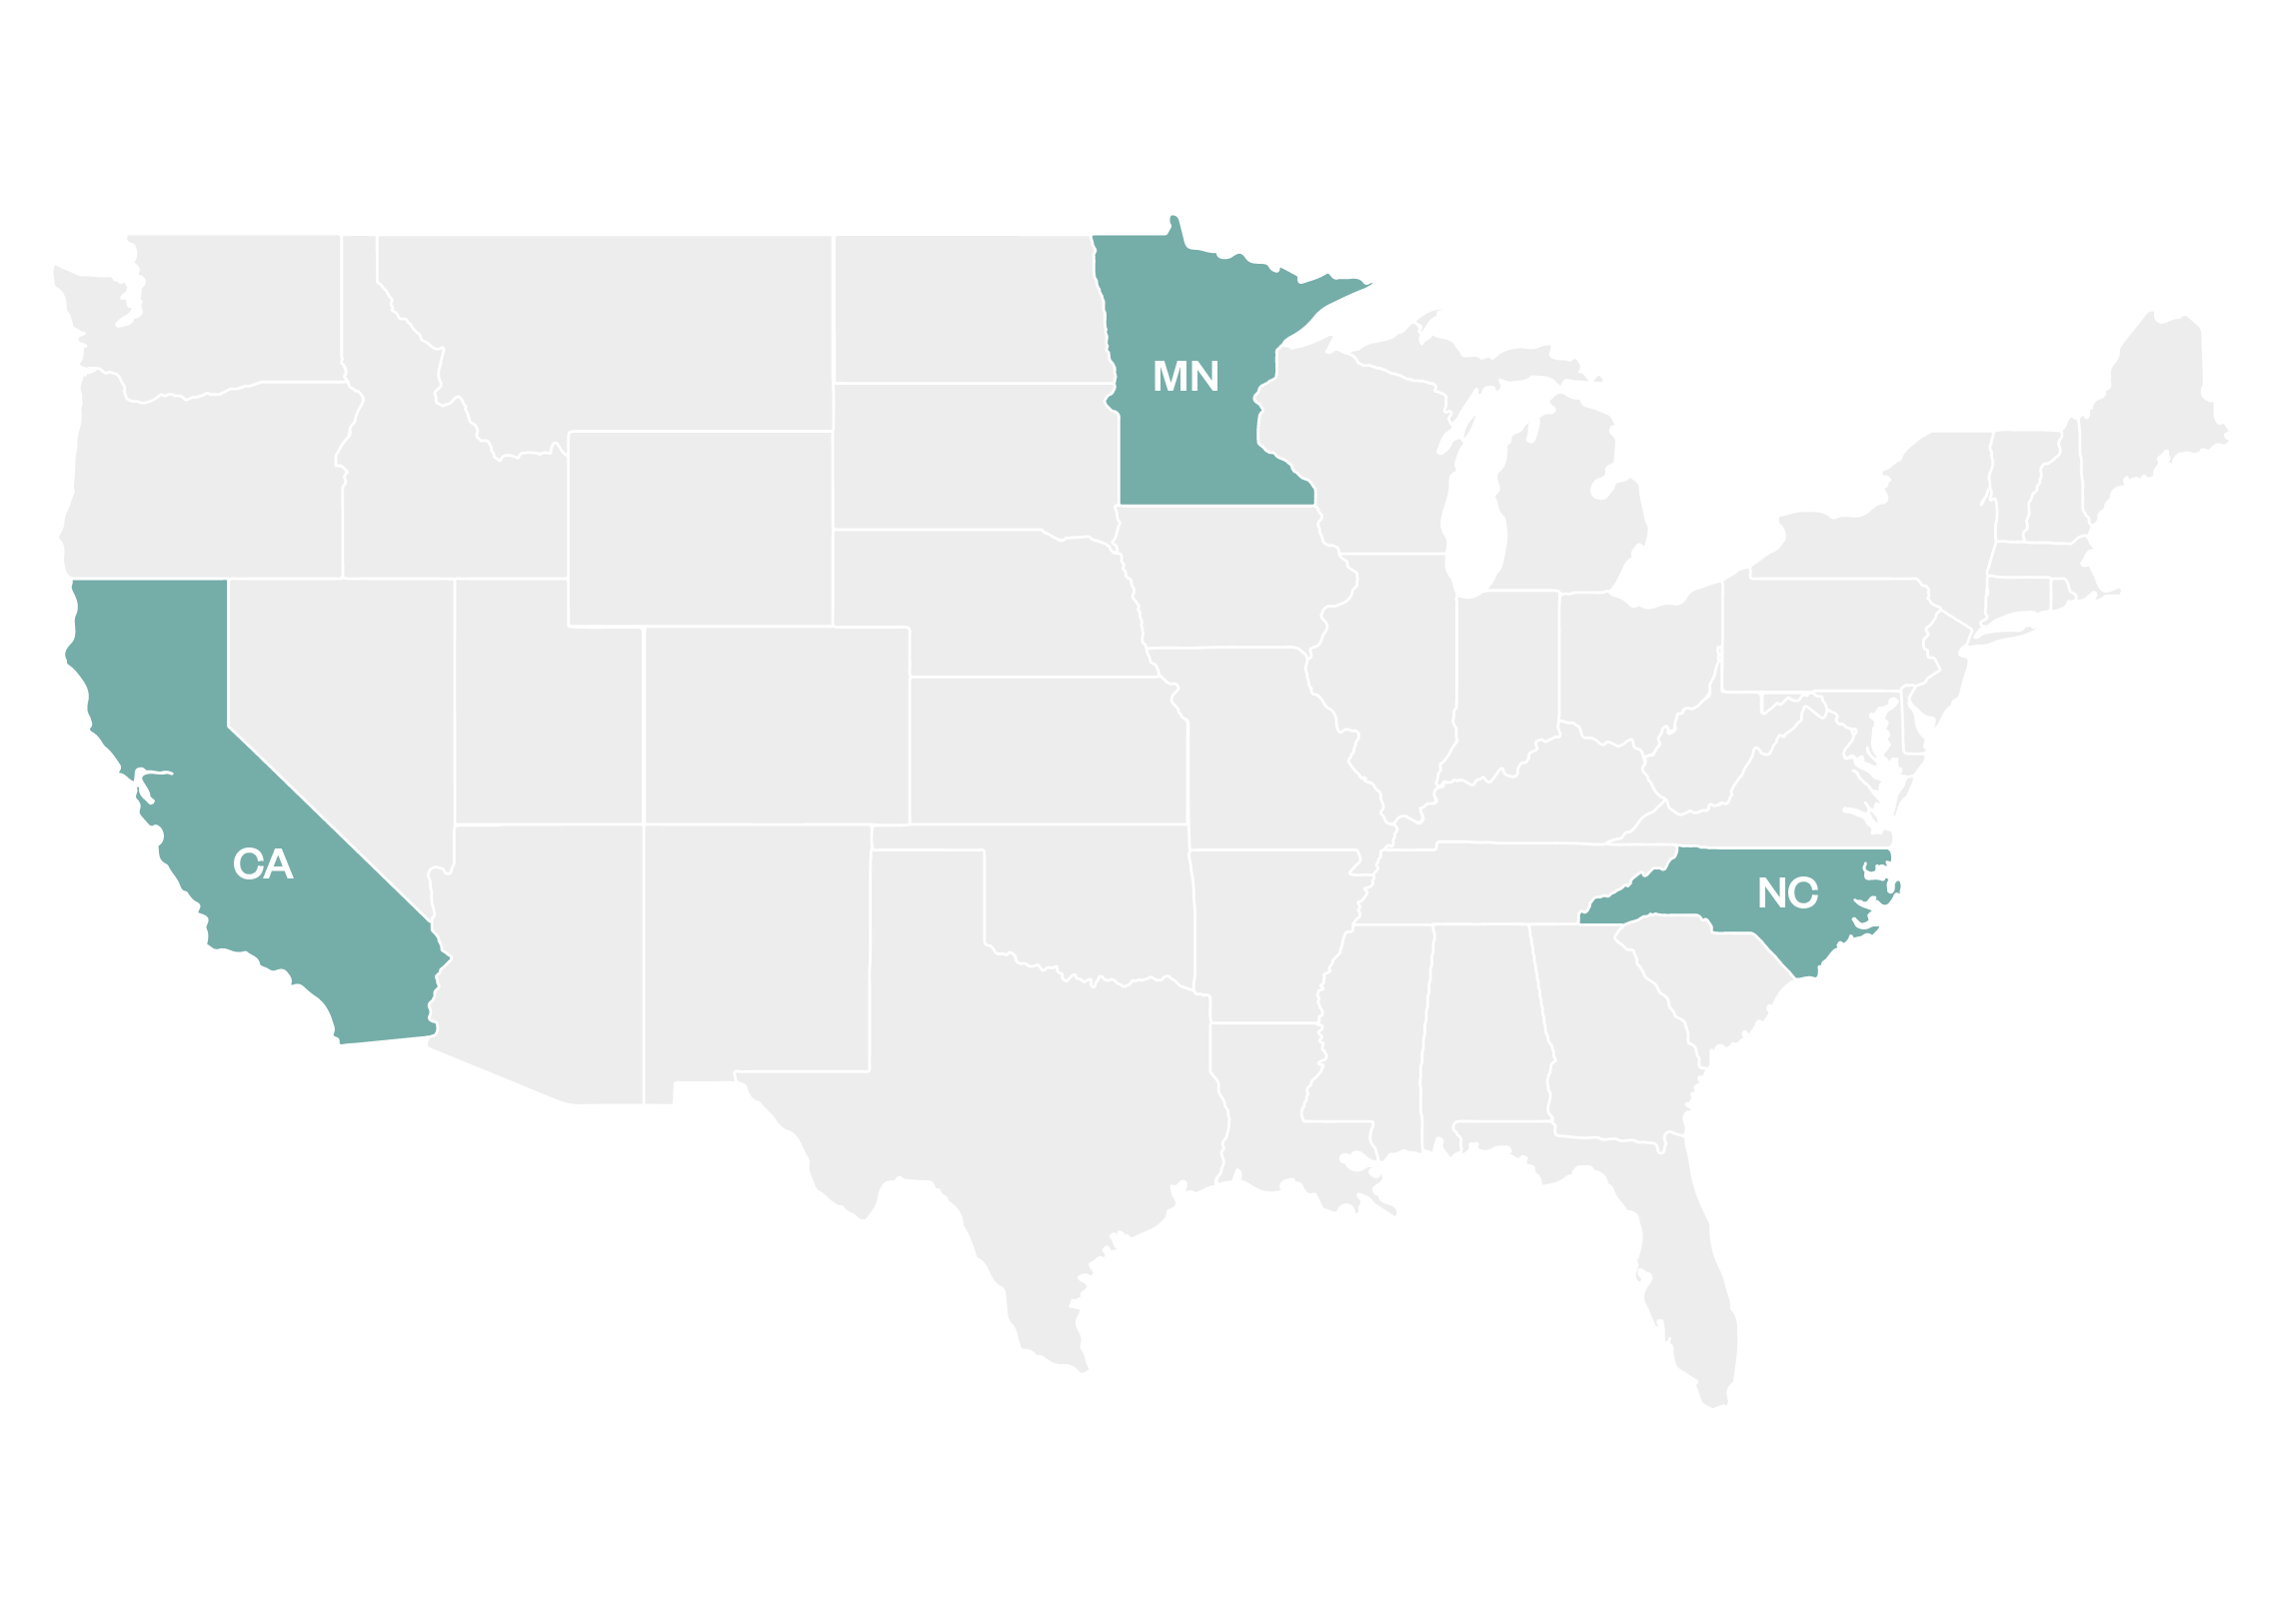 A United States map with California, Minnesota, and North Carolina highlighted